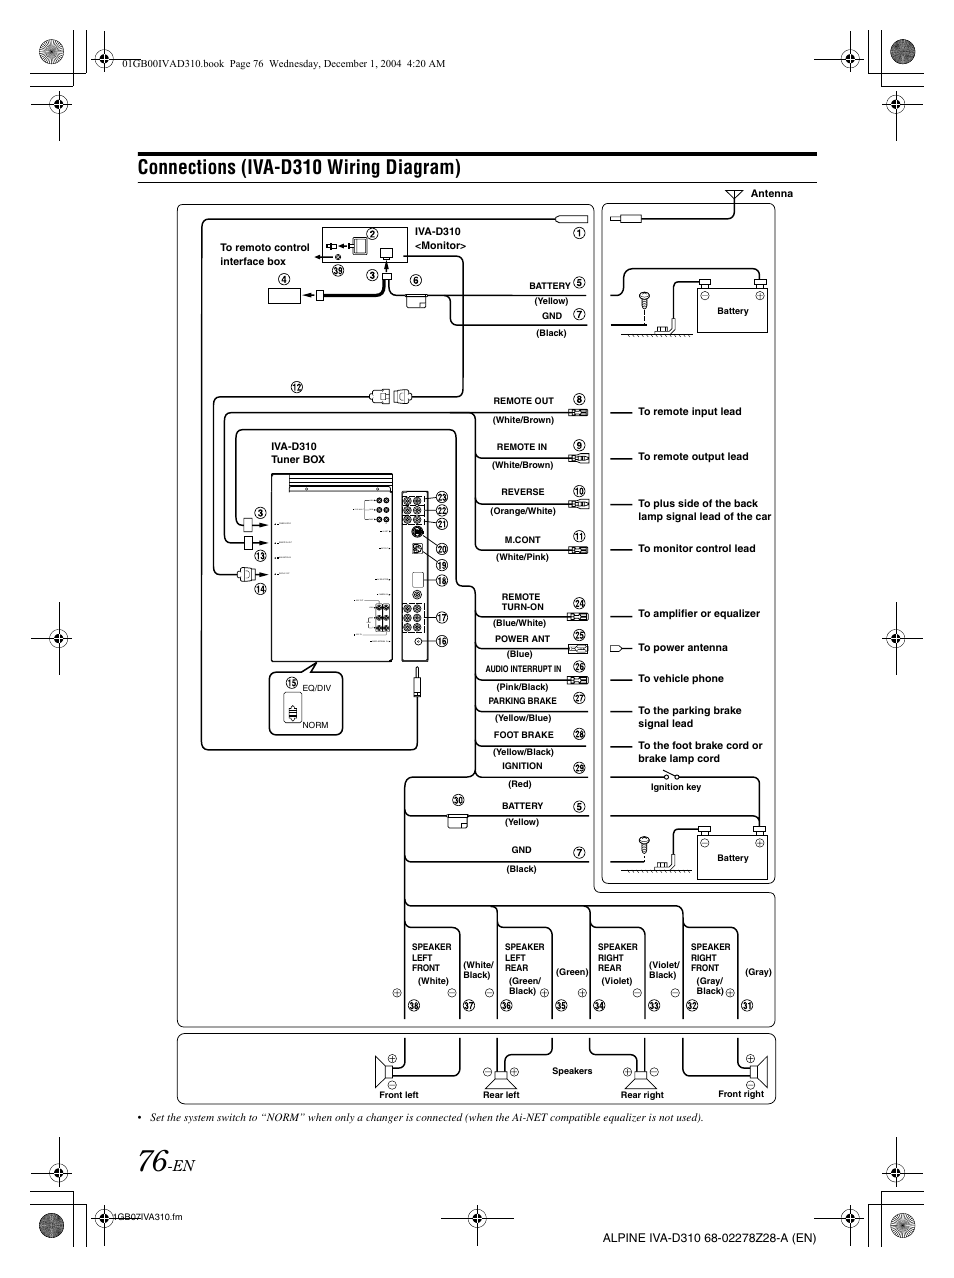 connections iva  wiring diagram alpine iva